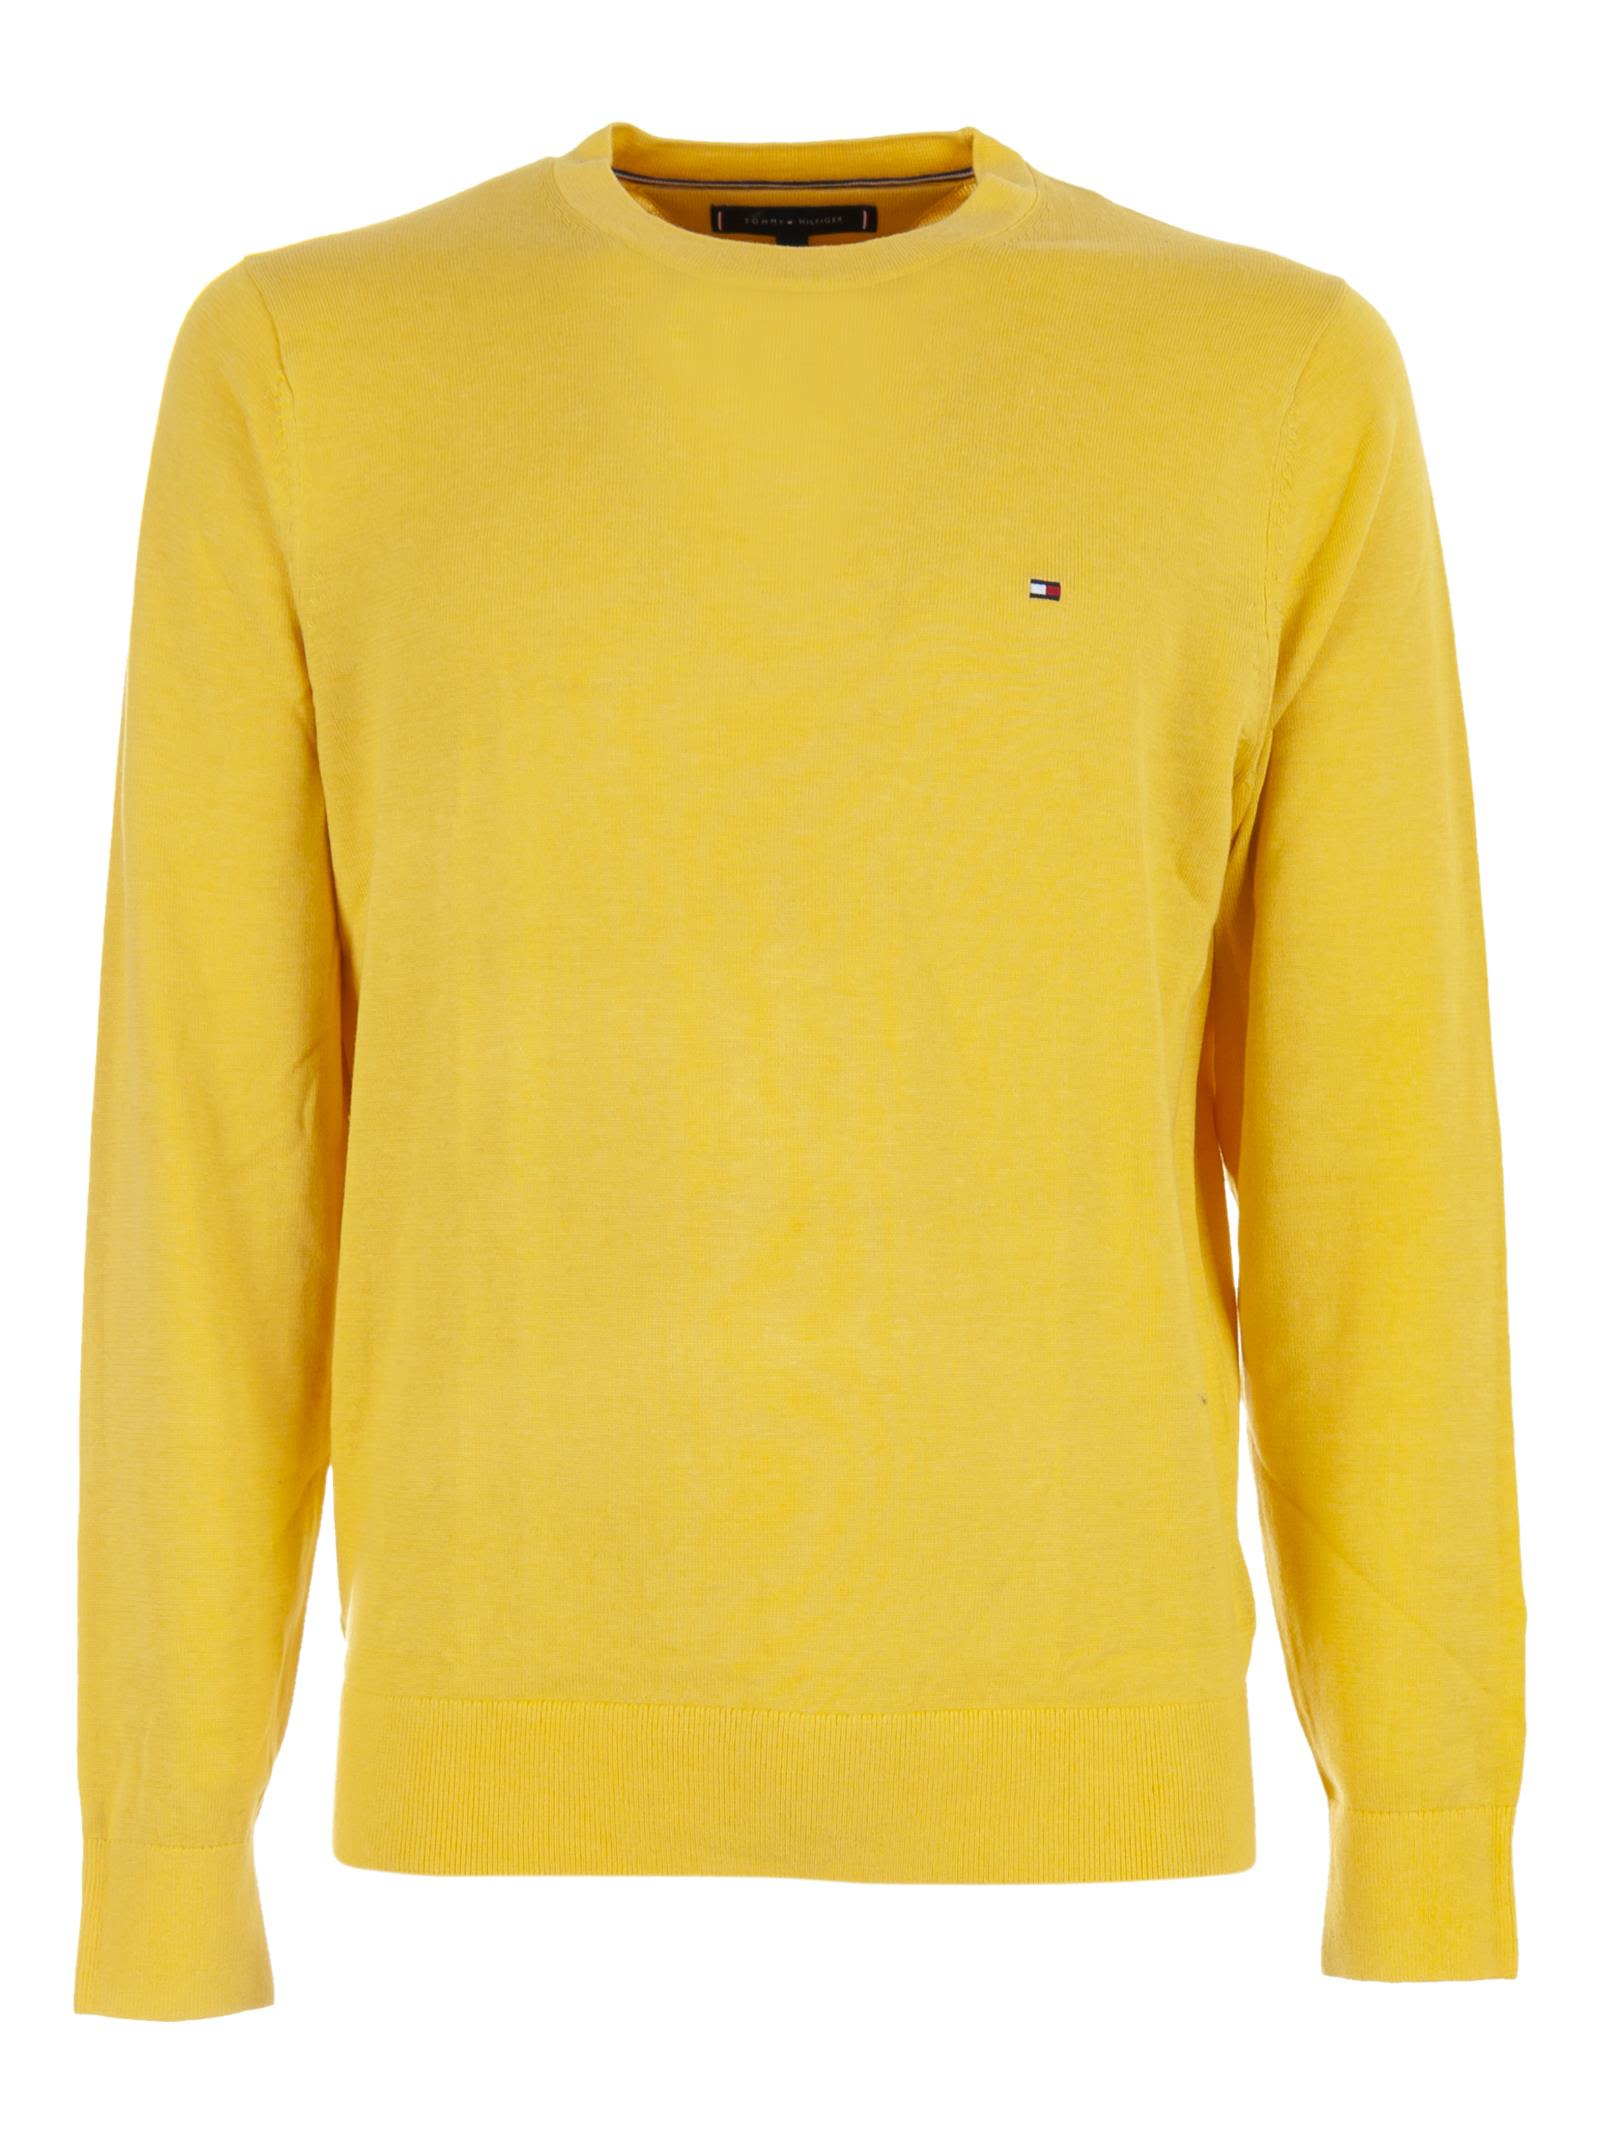 199fd0ed3 Tommy Hilfiger Tommy Hilfiger Pullover - Giallo - 10802209